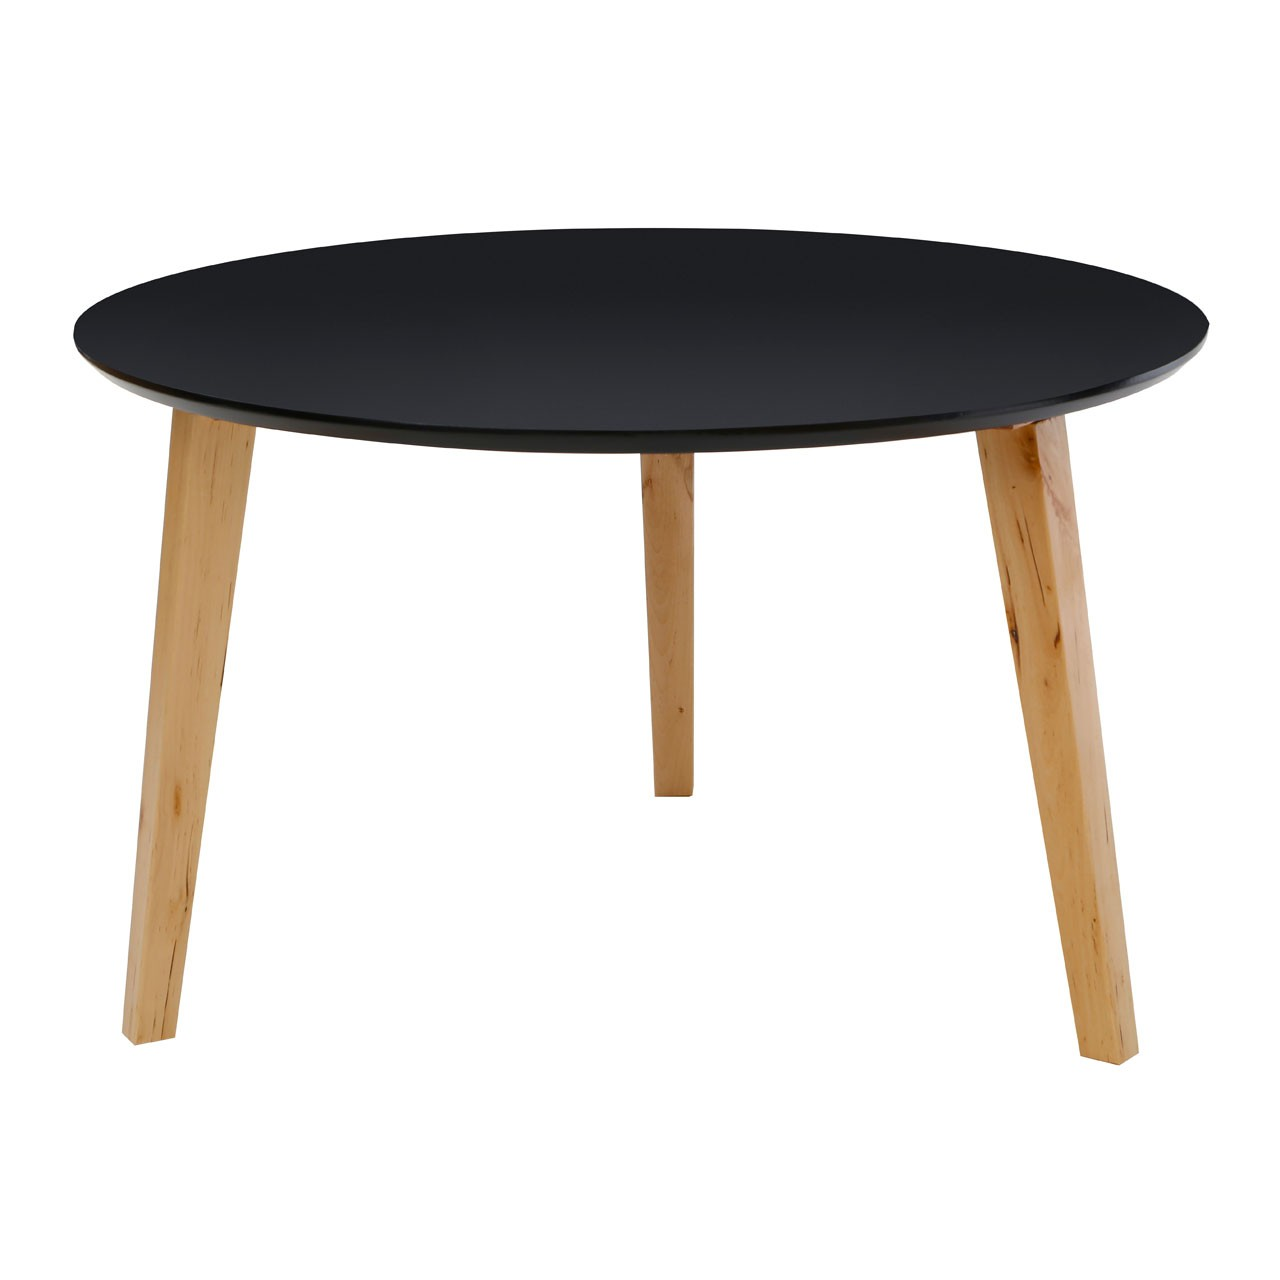 Fiesta Coffee Table - Black